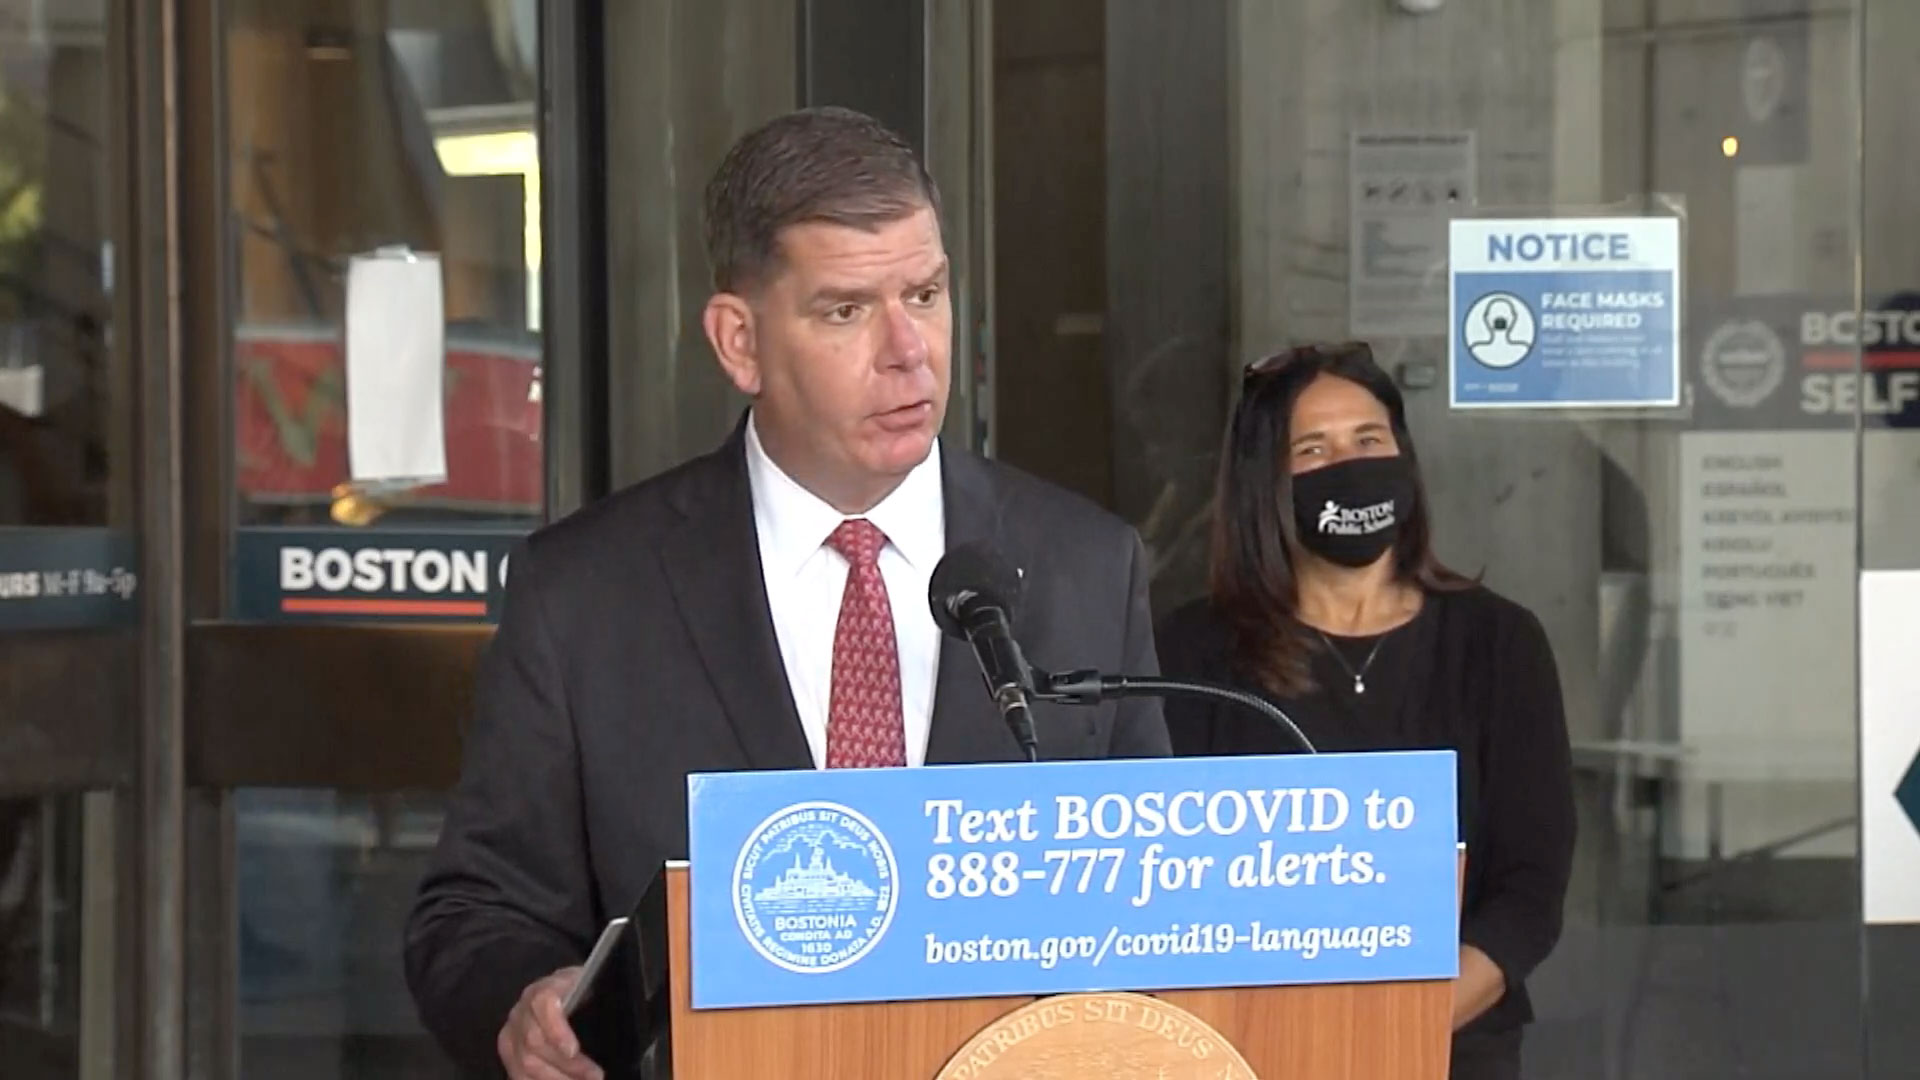 Mayor Marty Walsh speaks at a press conference in Boston on October 7.